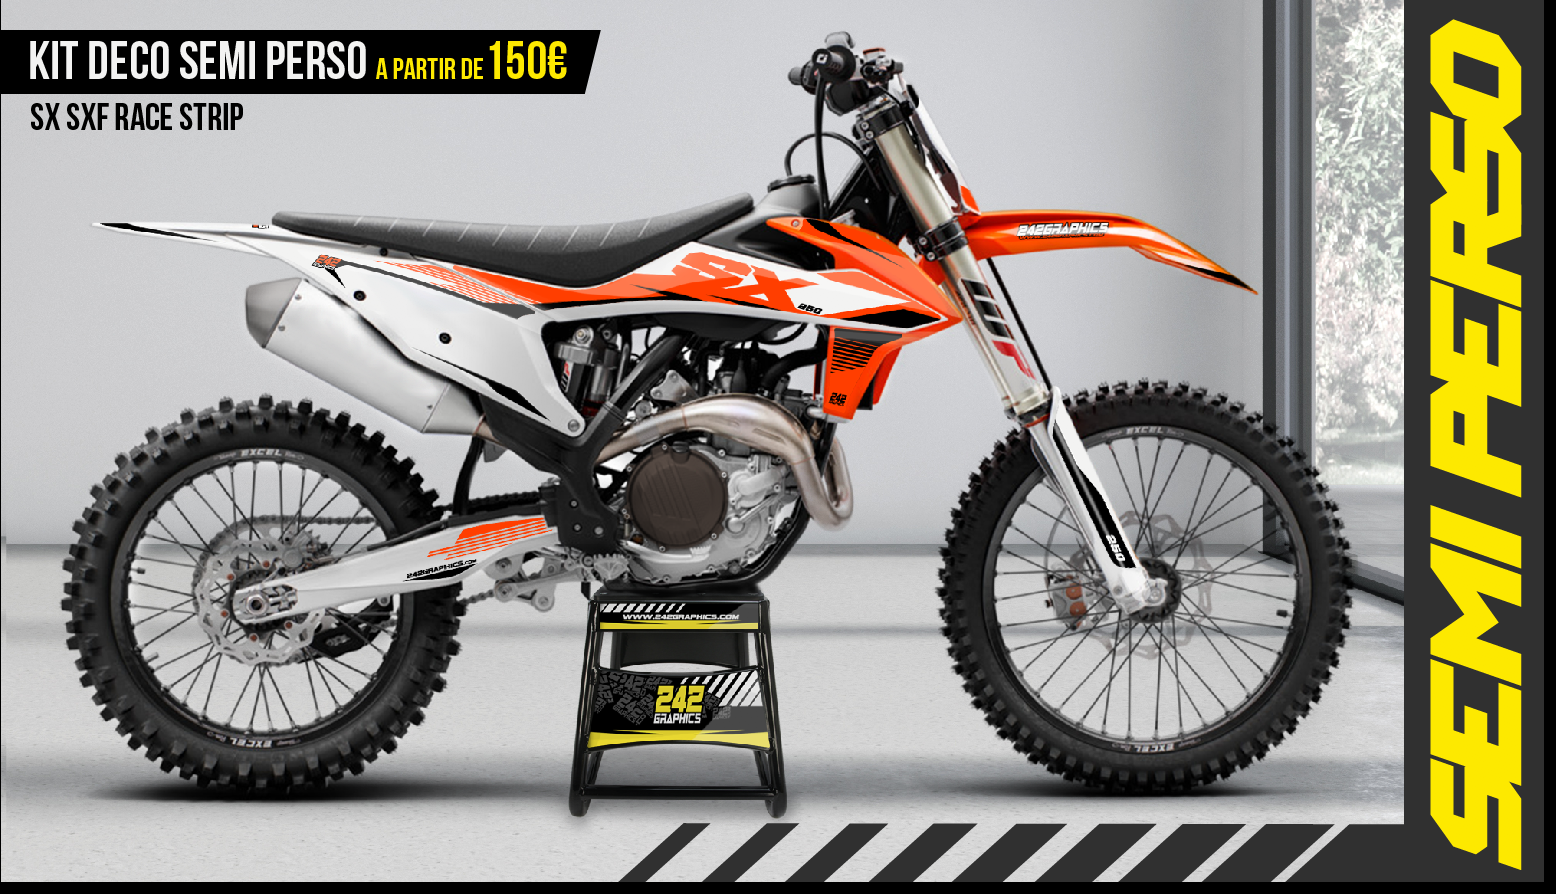 Kit déco perso ktm sx sxf race strip by 242graphics